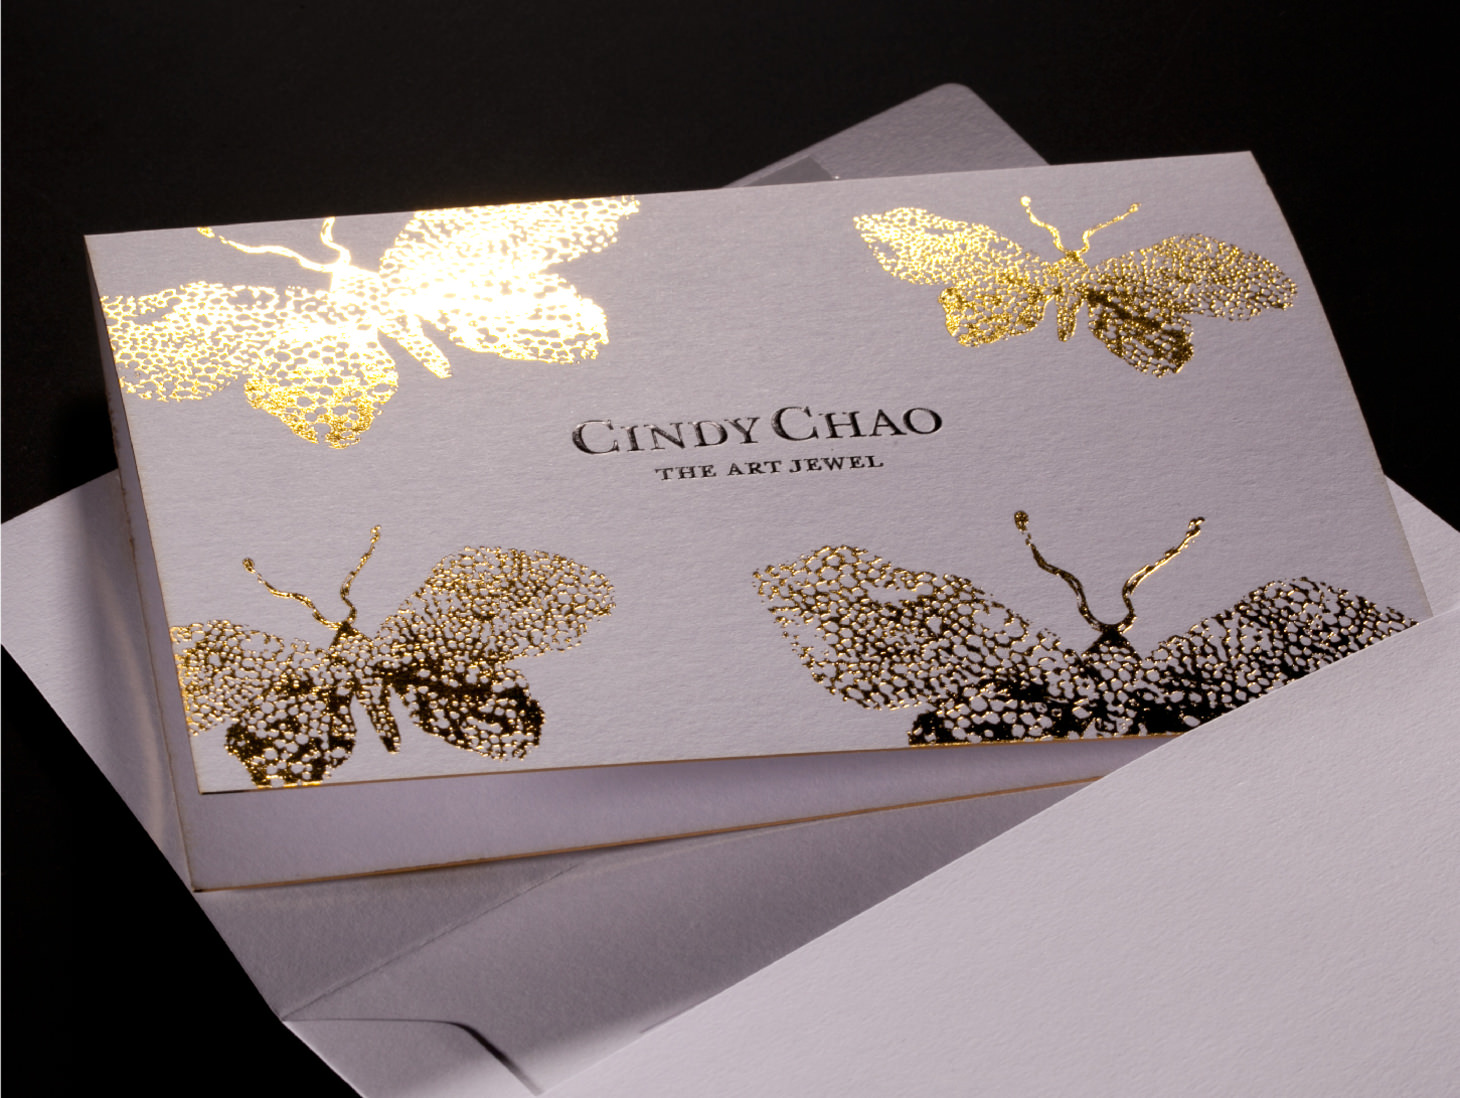 CINDYCHAO_Stationary_03.jpg